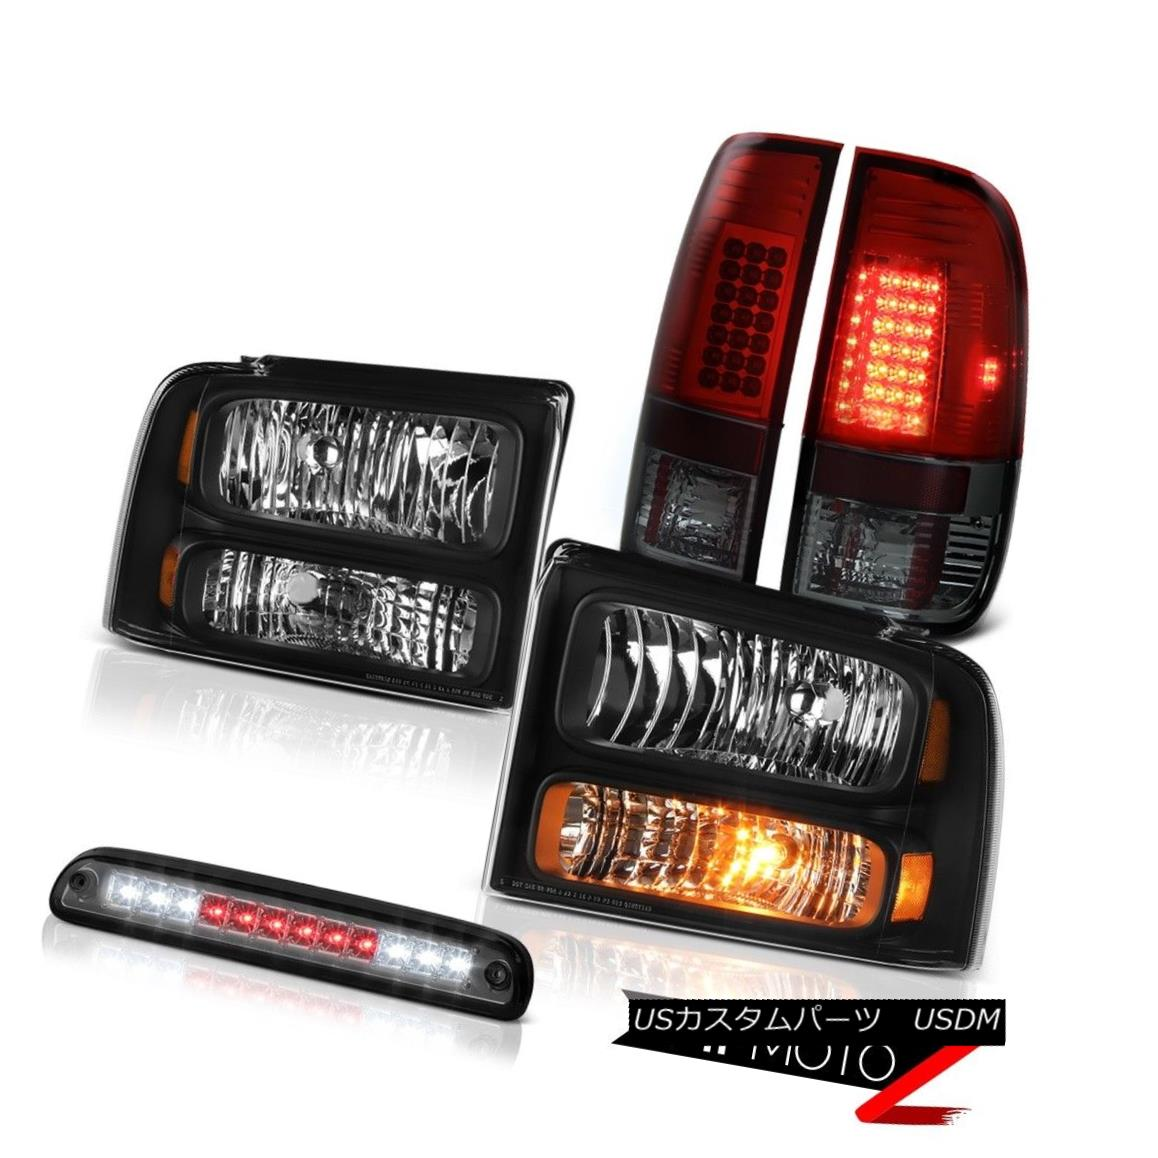 ヘッドライト 05-07 Ford F250 SD Left Right Headlights Red Smoke Tail Lights Third Brake LED 05-07 Ford F250 SD左ライトヘッドライト赤煙テールライトThird Brake LED